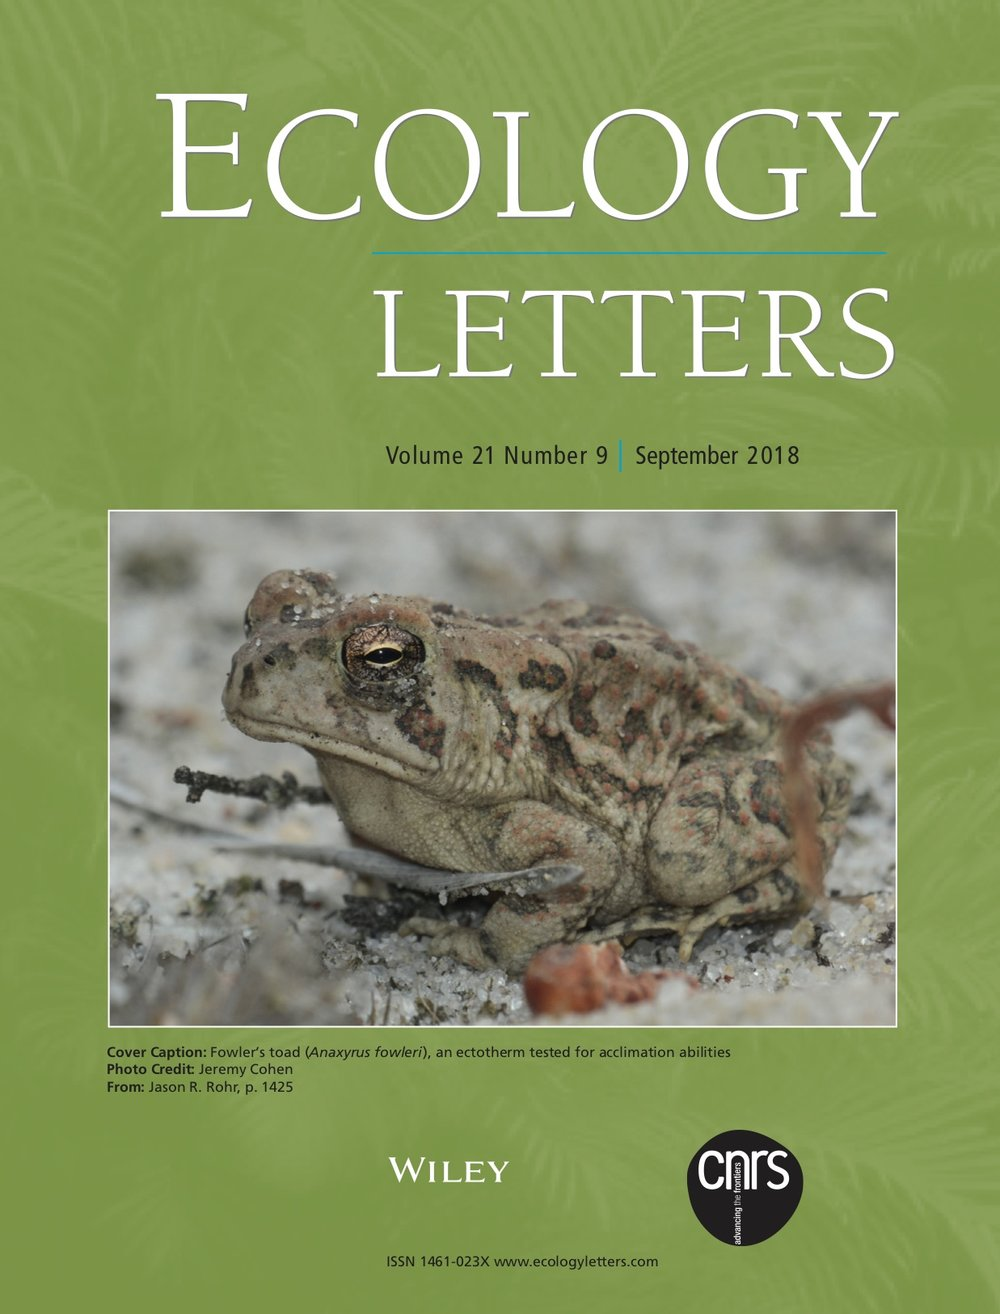 30 front cover for acclimation ecol lett.jpg